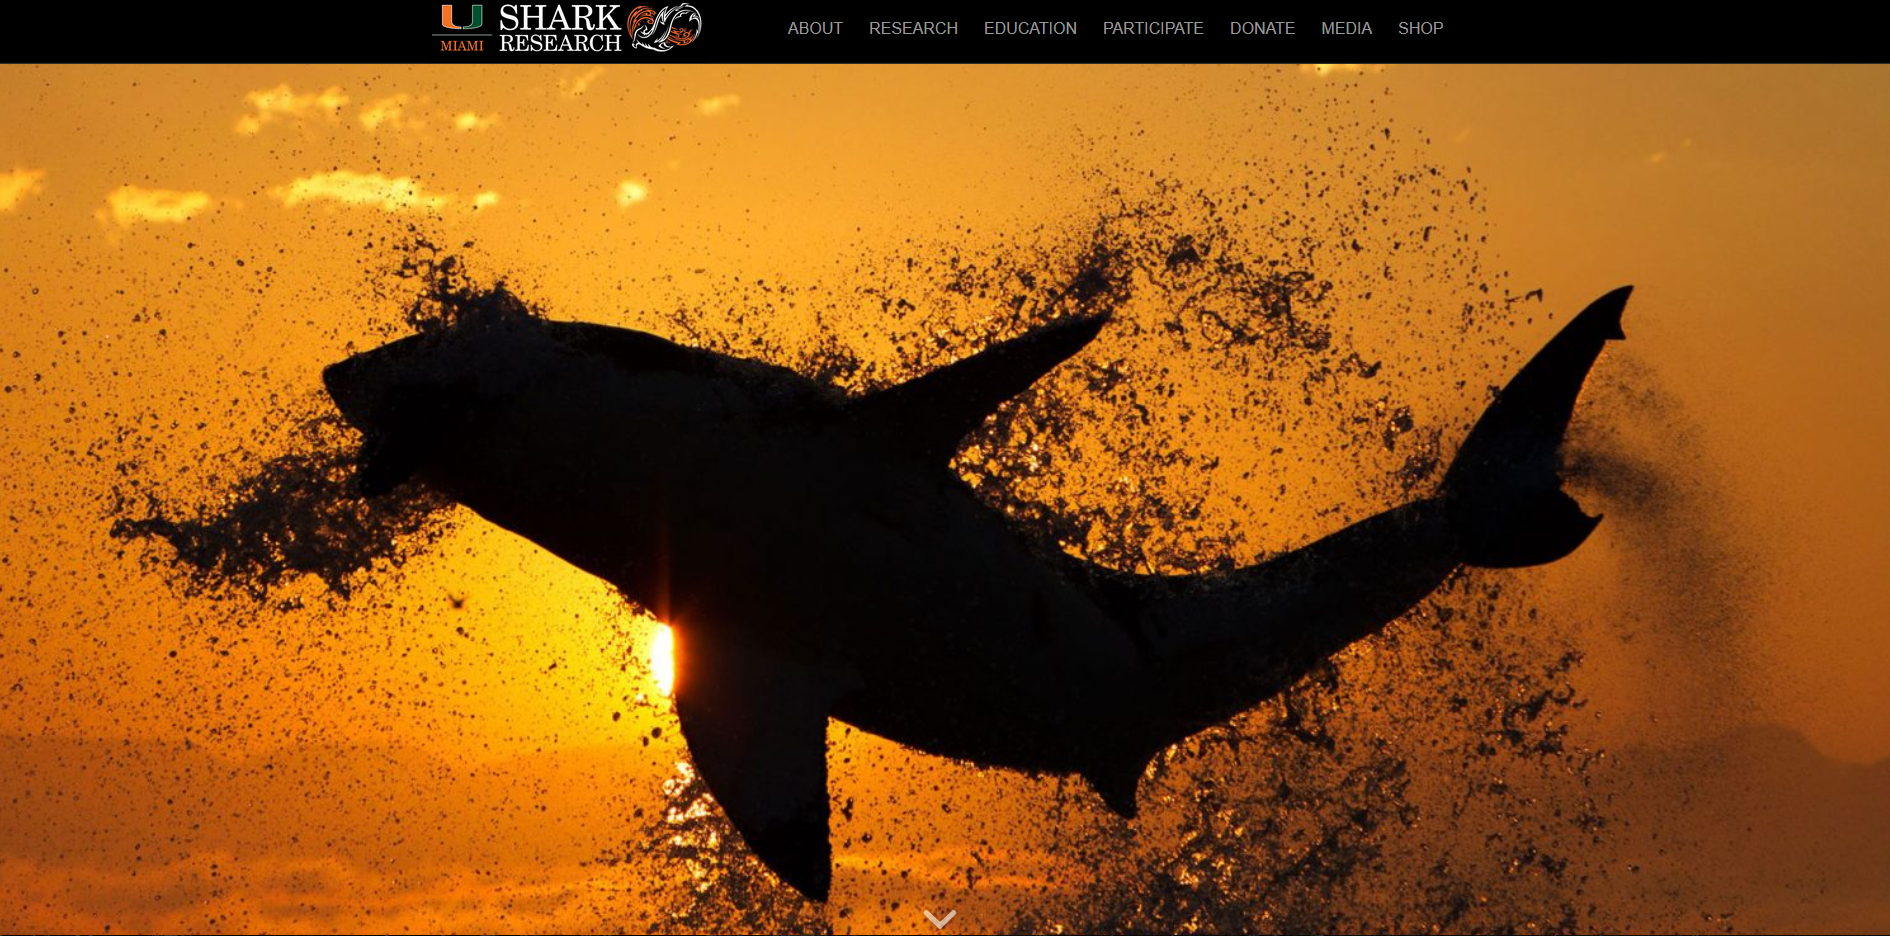 Screenshot of the University of Miami's Shark Research website with a large image of a shark swimming stretching across the page.